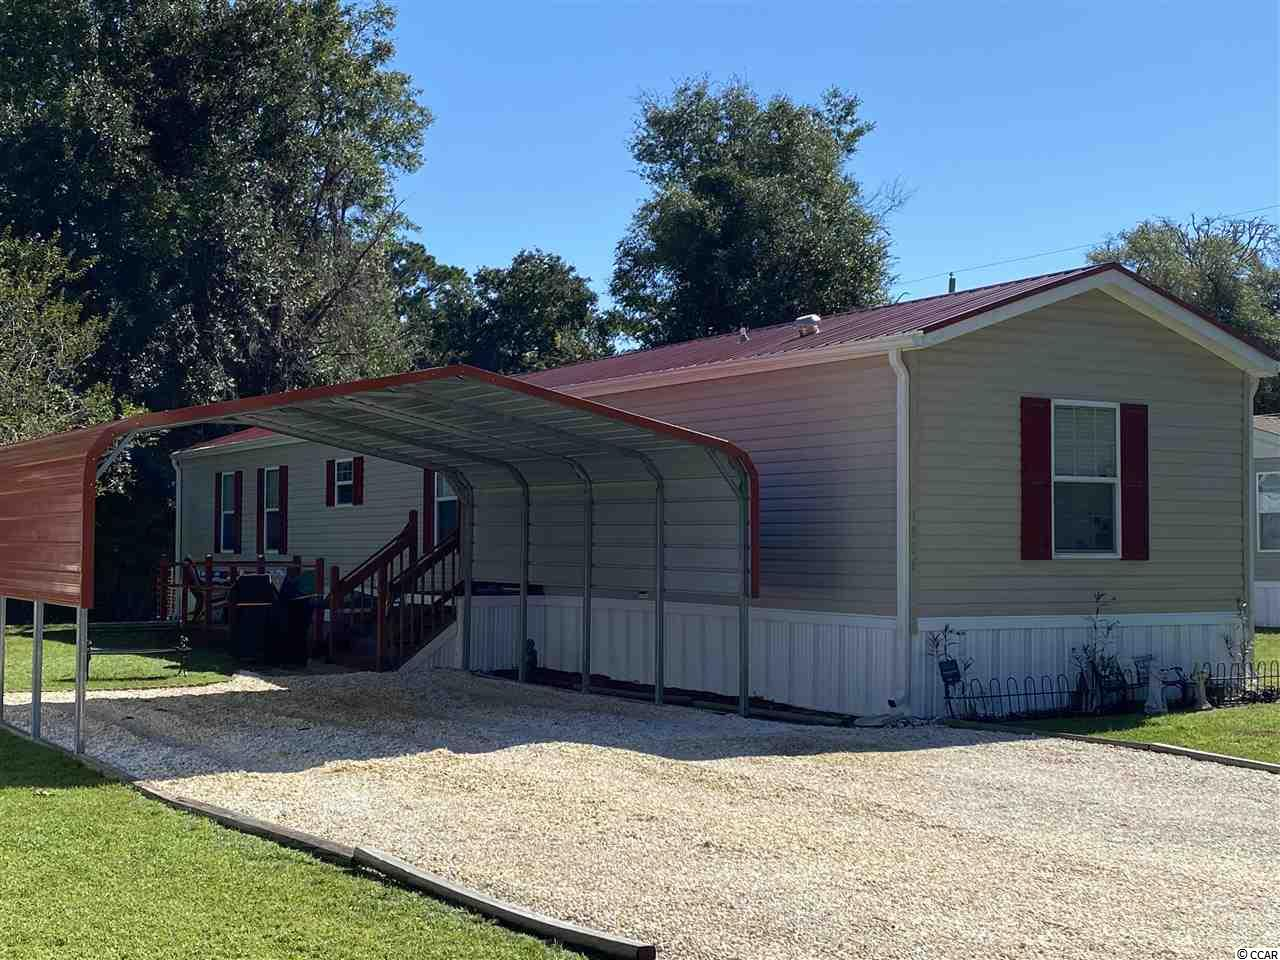 When you step through the front door it feels like home. There are many visible upgrades adding character to boast about, brand new metal roof, Luxury vinyl plank flooring throughout the home. Crown molding and chair rails throughout.  Split bedroom floorplan with 3 bedrooms and 2 baths. A cozy master bedroom sits on one end of the home with 2 good sized bedrooms and a full bathroom on the other side of the home Blinds on all windows convey.  Relax on the back porch overlooking the pond.  Brand new 2 car carport with pebble driveway.  6 years left on a 10 year warranty.  Roof has a lifetime warranty.